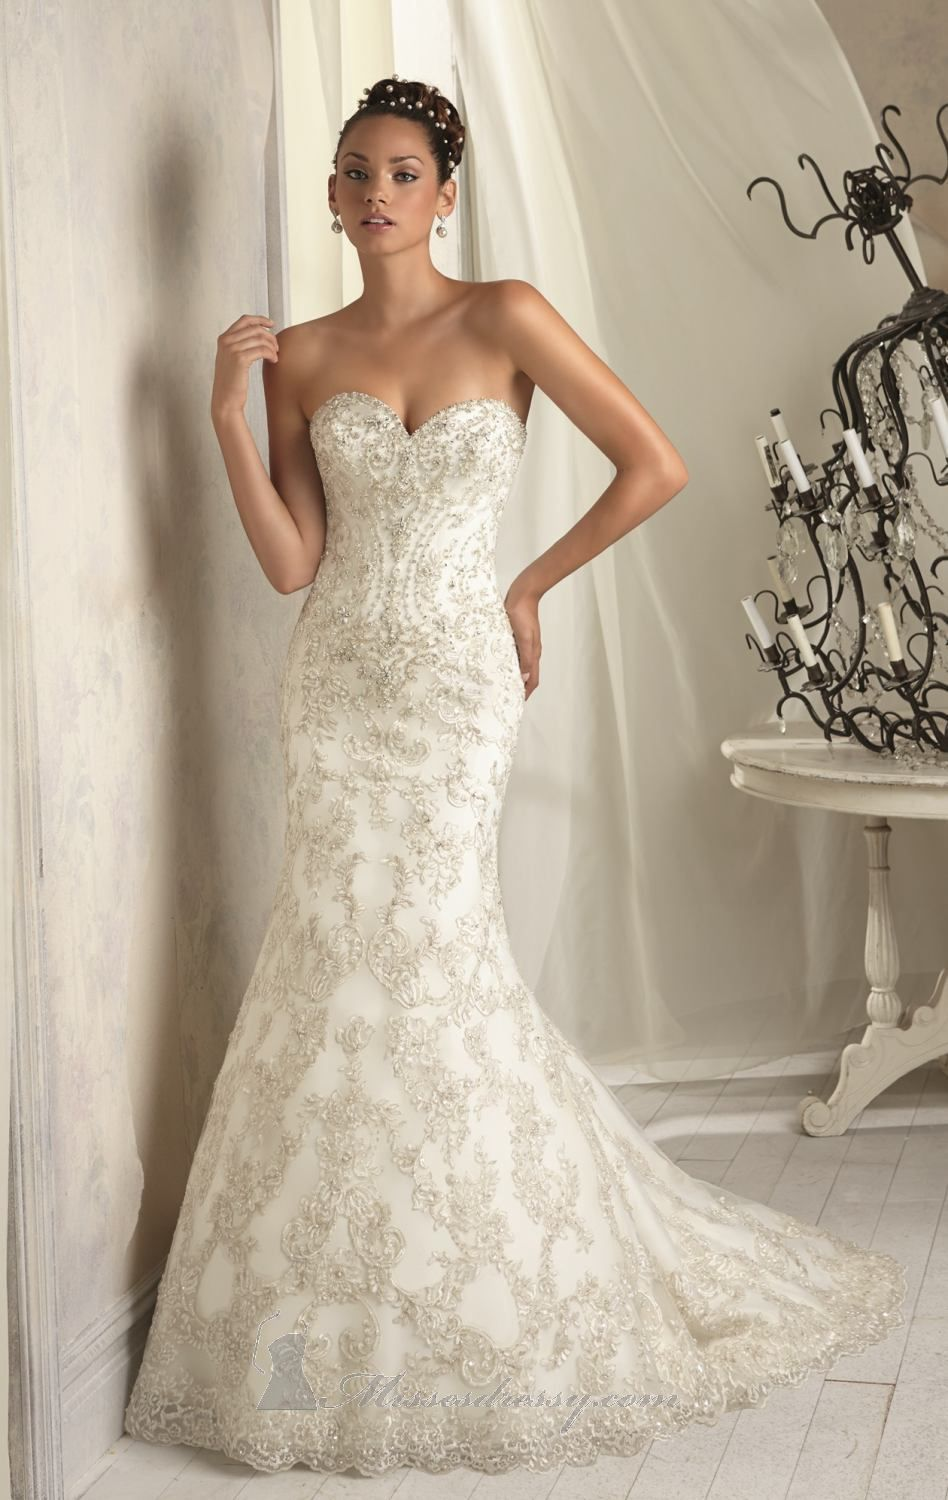 Wedding Dresses for Tall Skinny Brides - Wedding Dresses for Guests ...